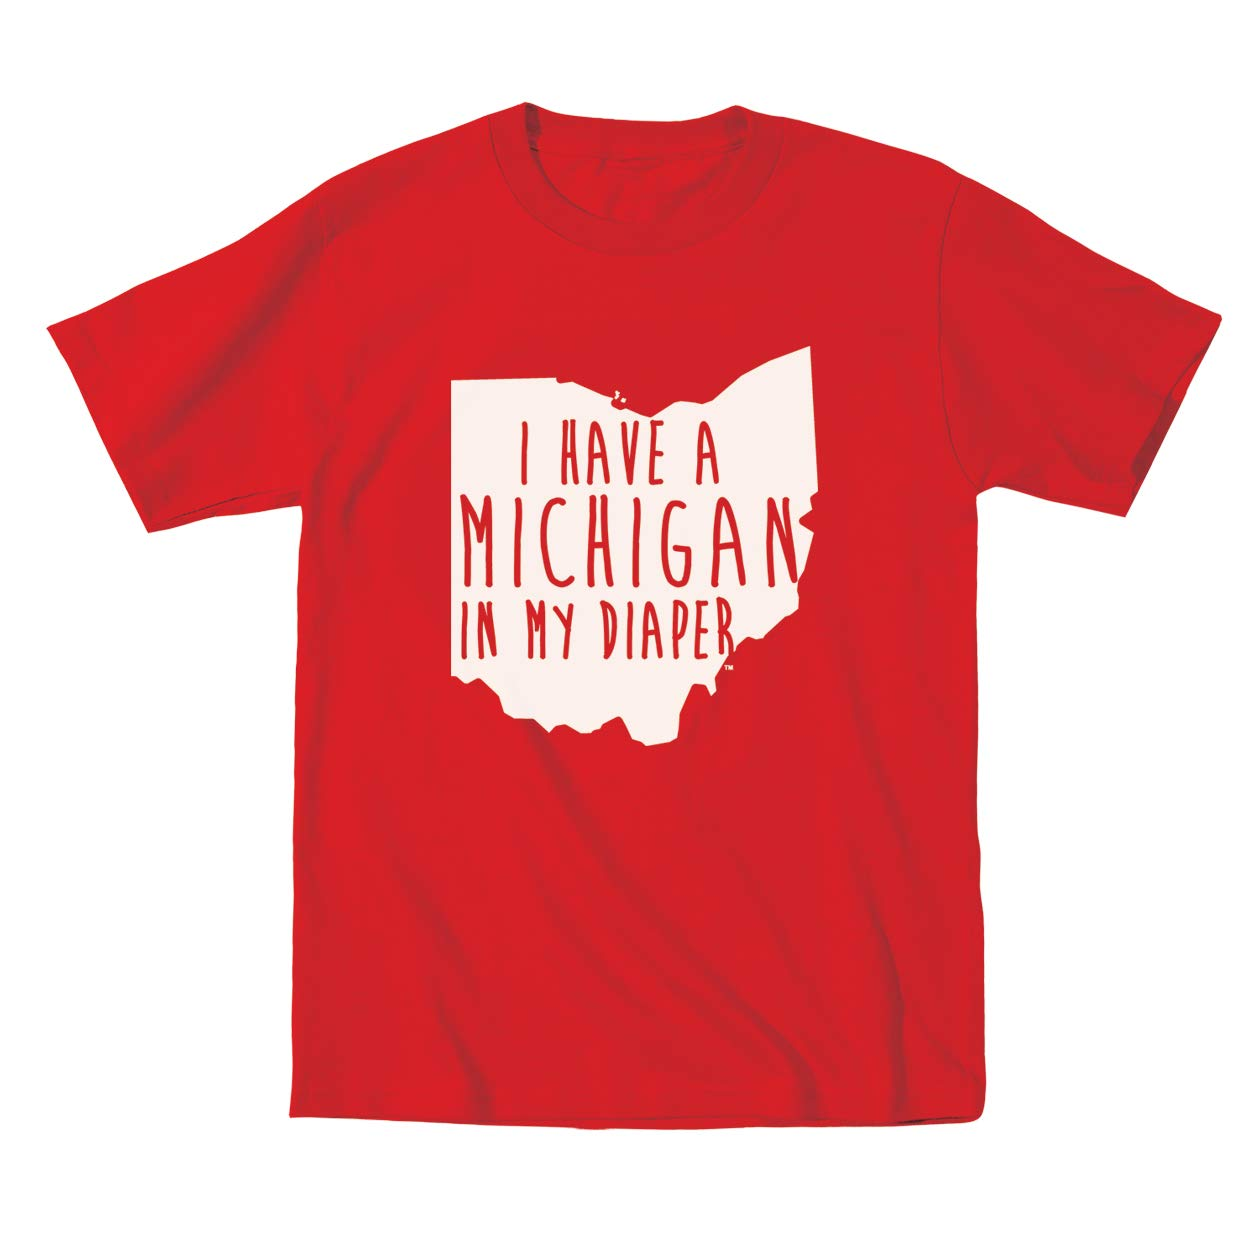 I Have A Michigan in My Diaper Ohio Football Funny Anti Hate M Classic OH IO Poop Dirty Child Humor Toddler Shirt 2T Red by Funny Threads Outlet